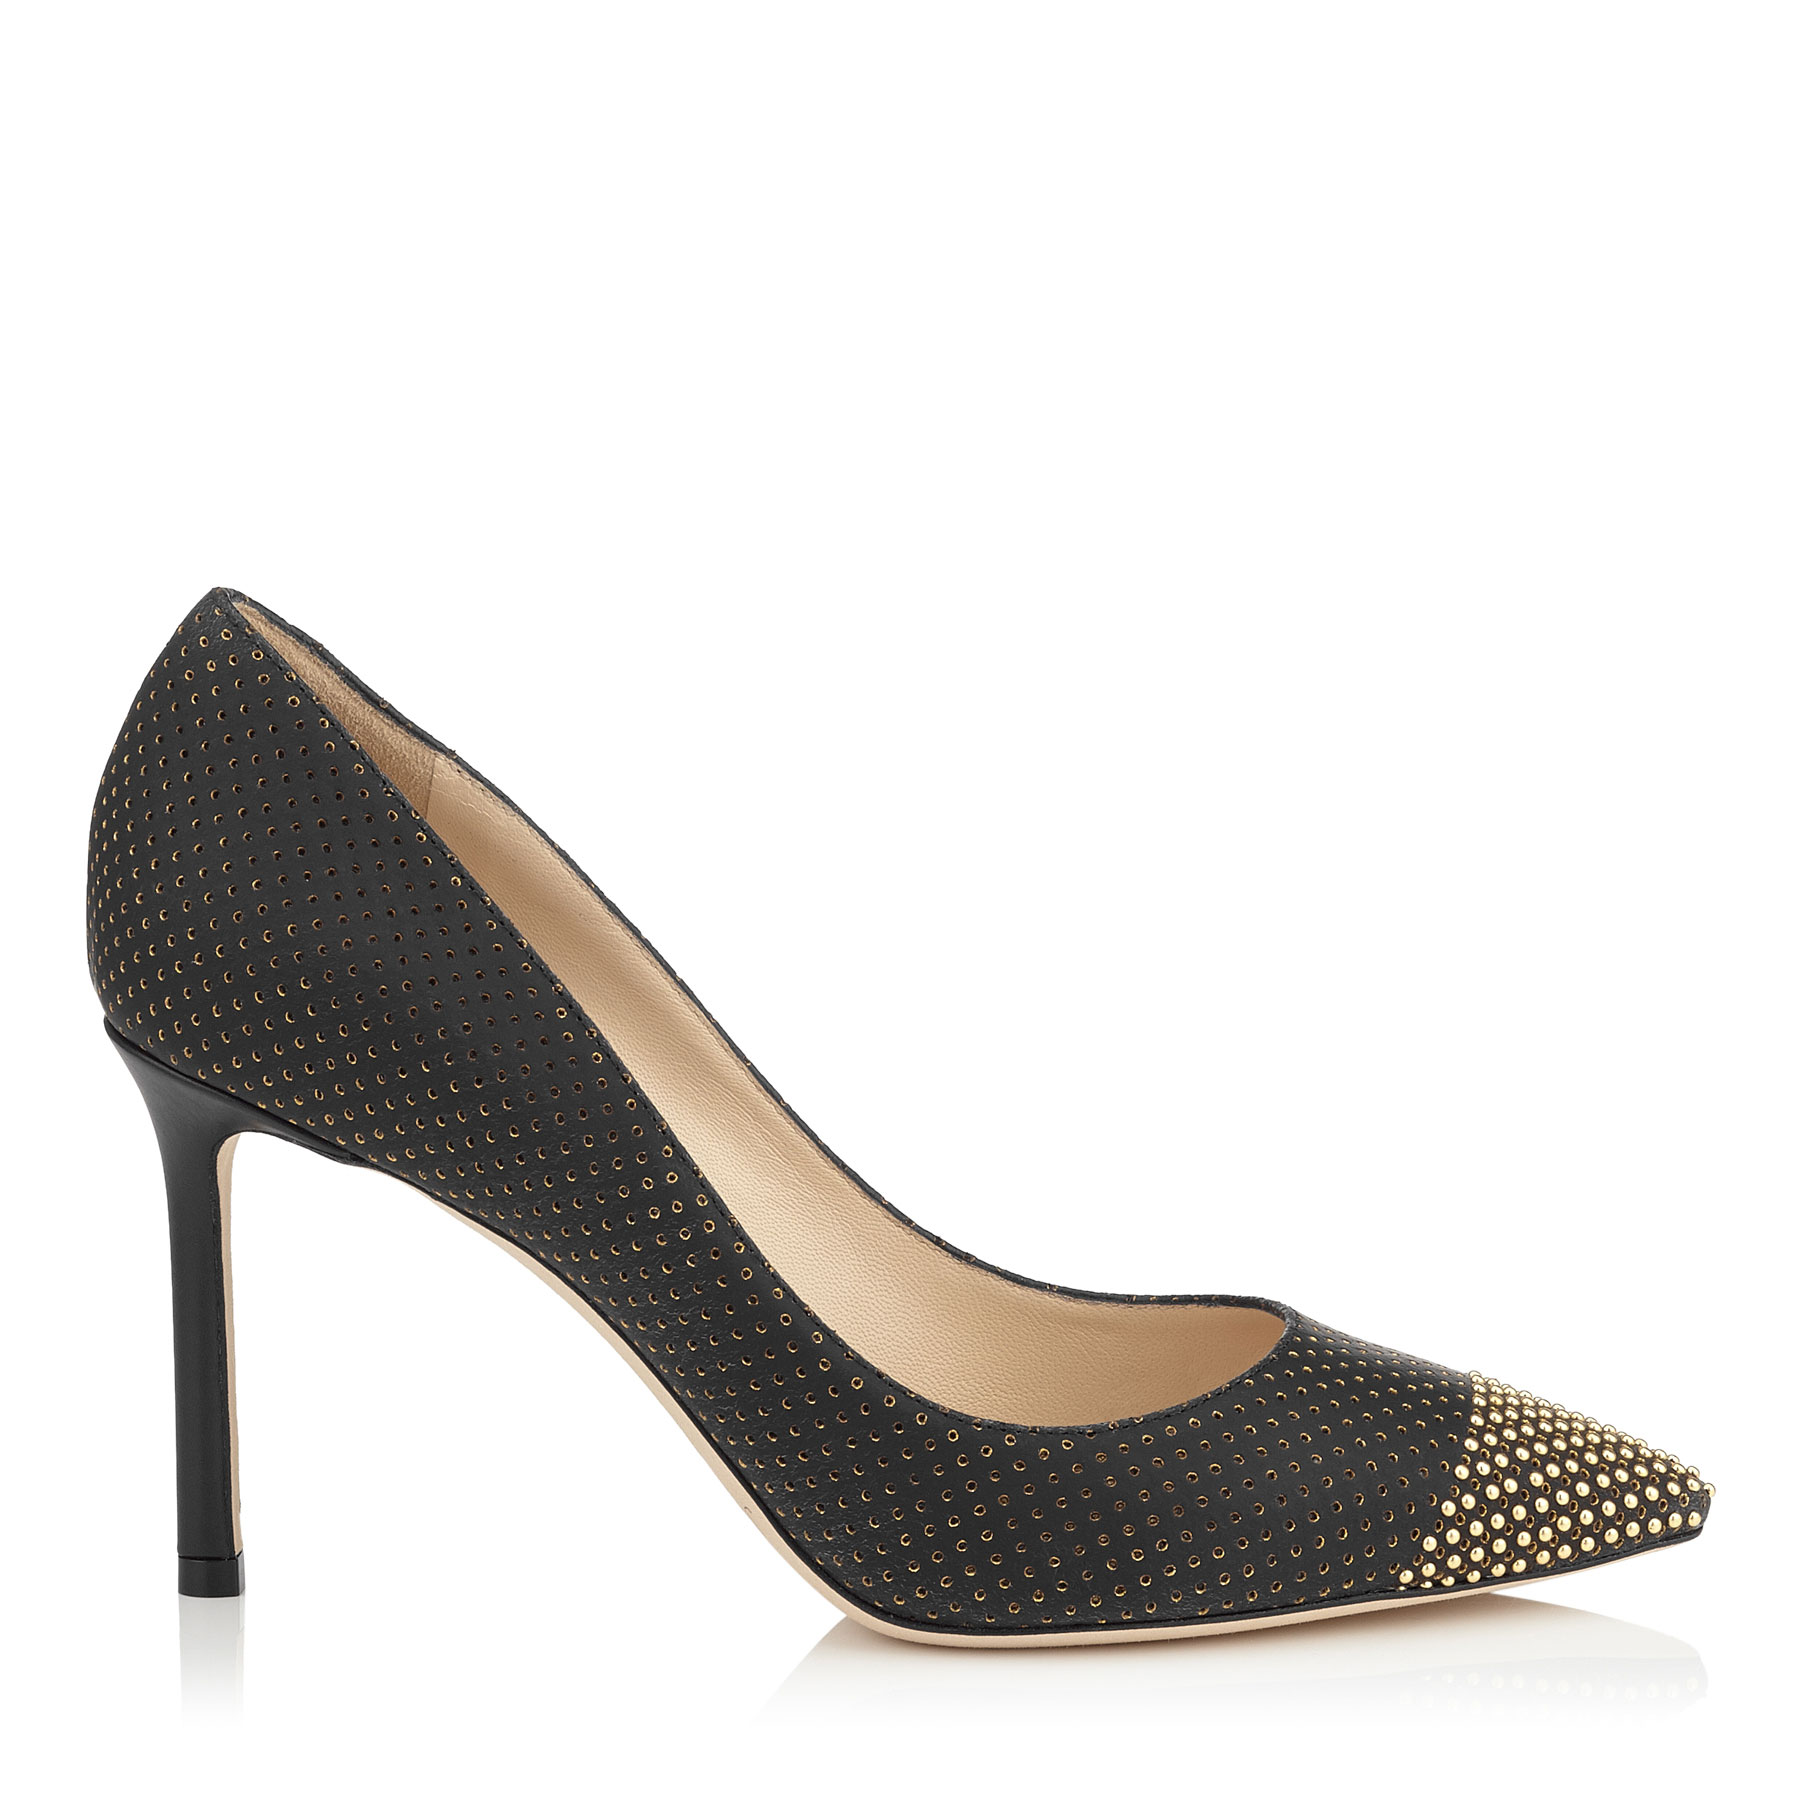 ROMY 85 Black and Gold Perforated Suede Pointy Toe Pumps with Studs